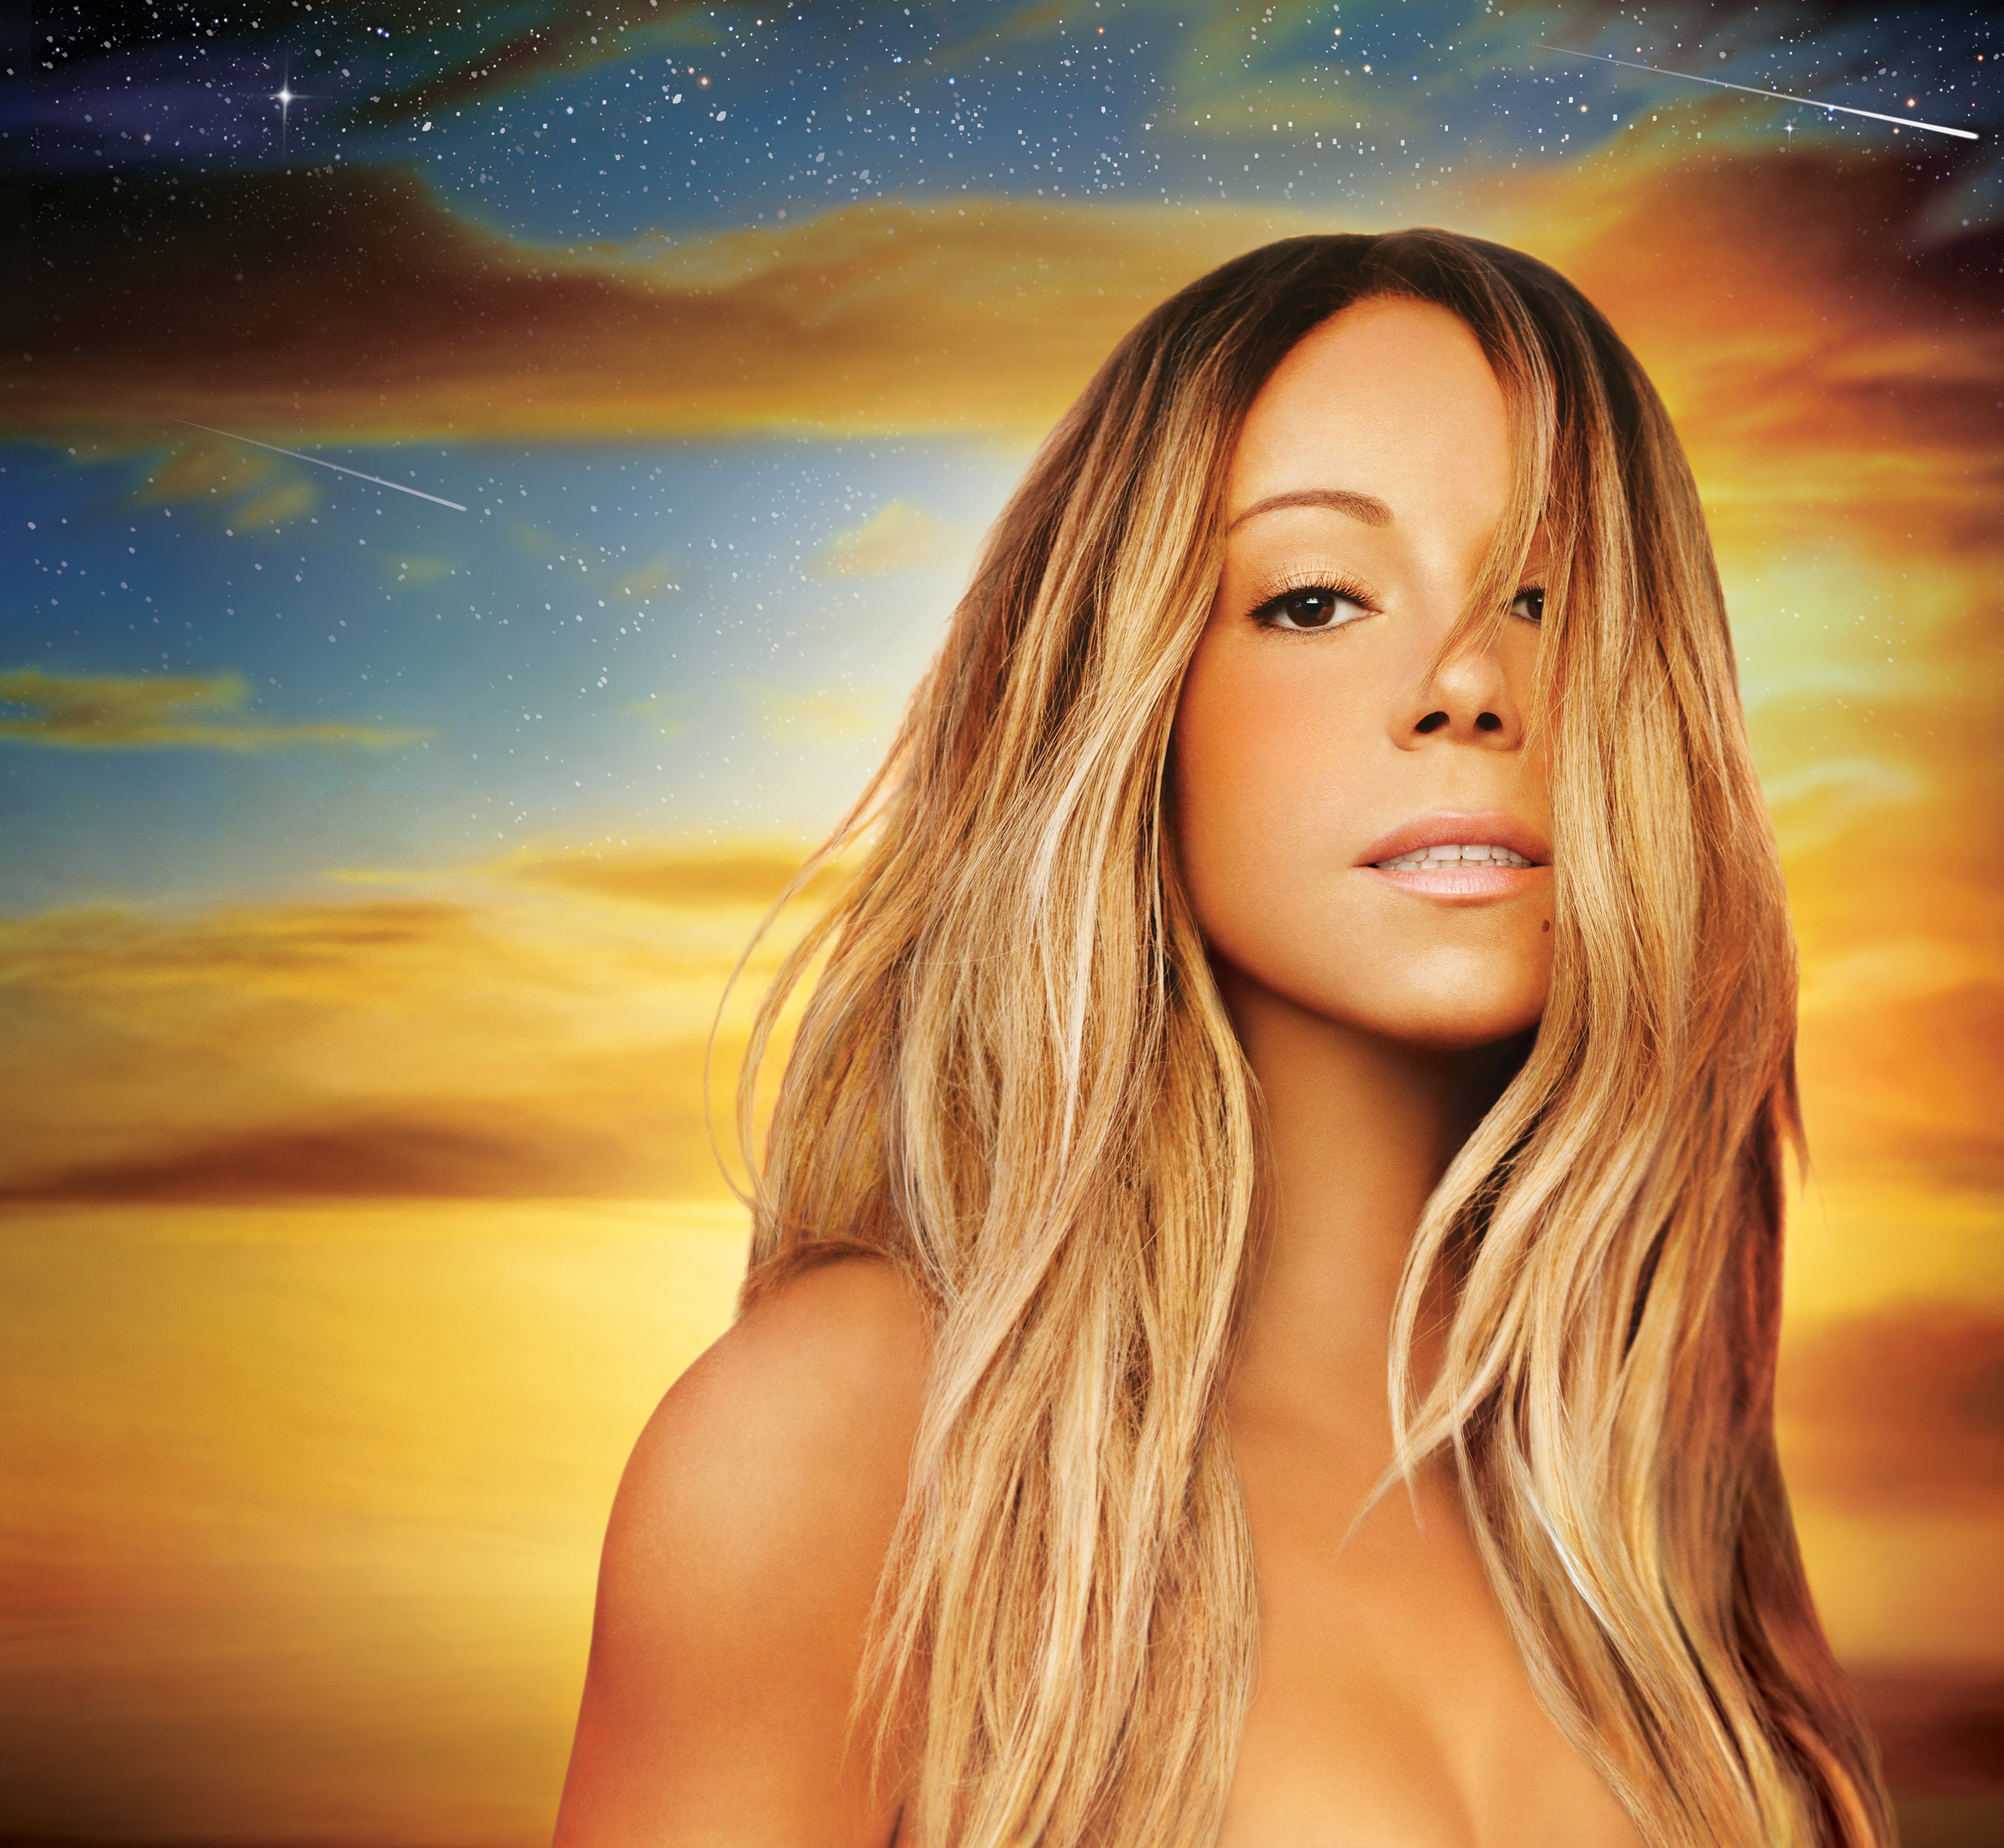 Design Artwork for Mariah Carey.